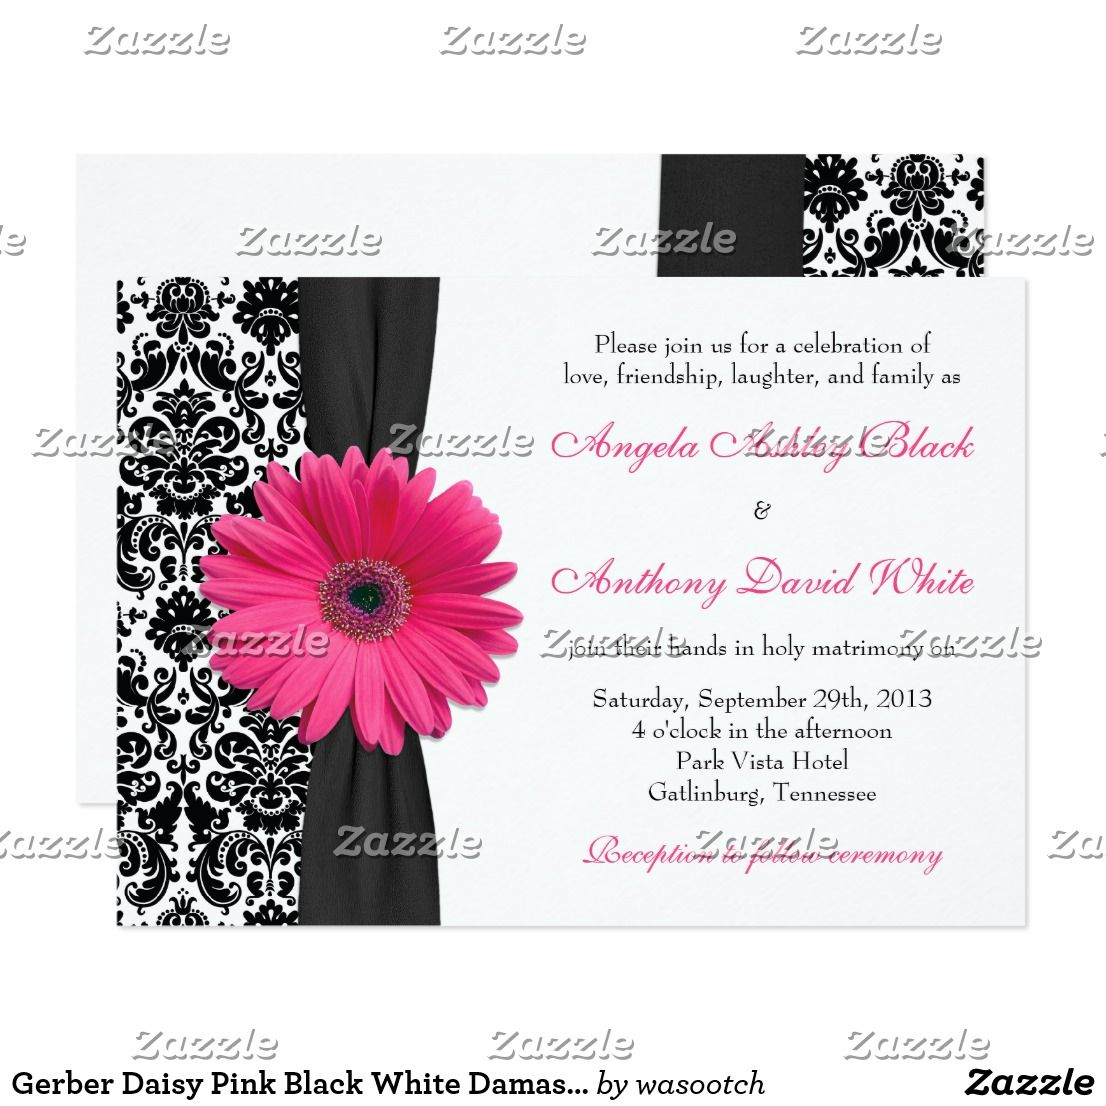 Gerber Daisy Pink Black White Damask Wedding Invitation Zazzle Com Damask Wedding Invitation Damask Wedding Daisy Wedding Invitations